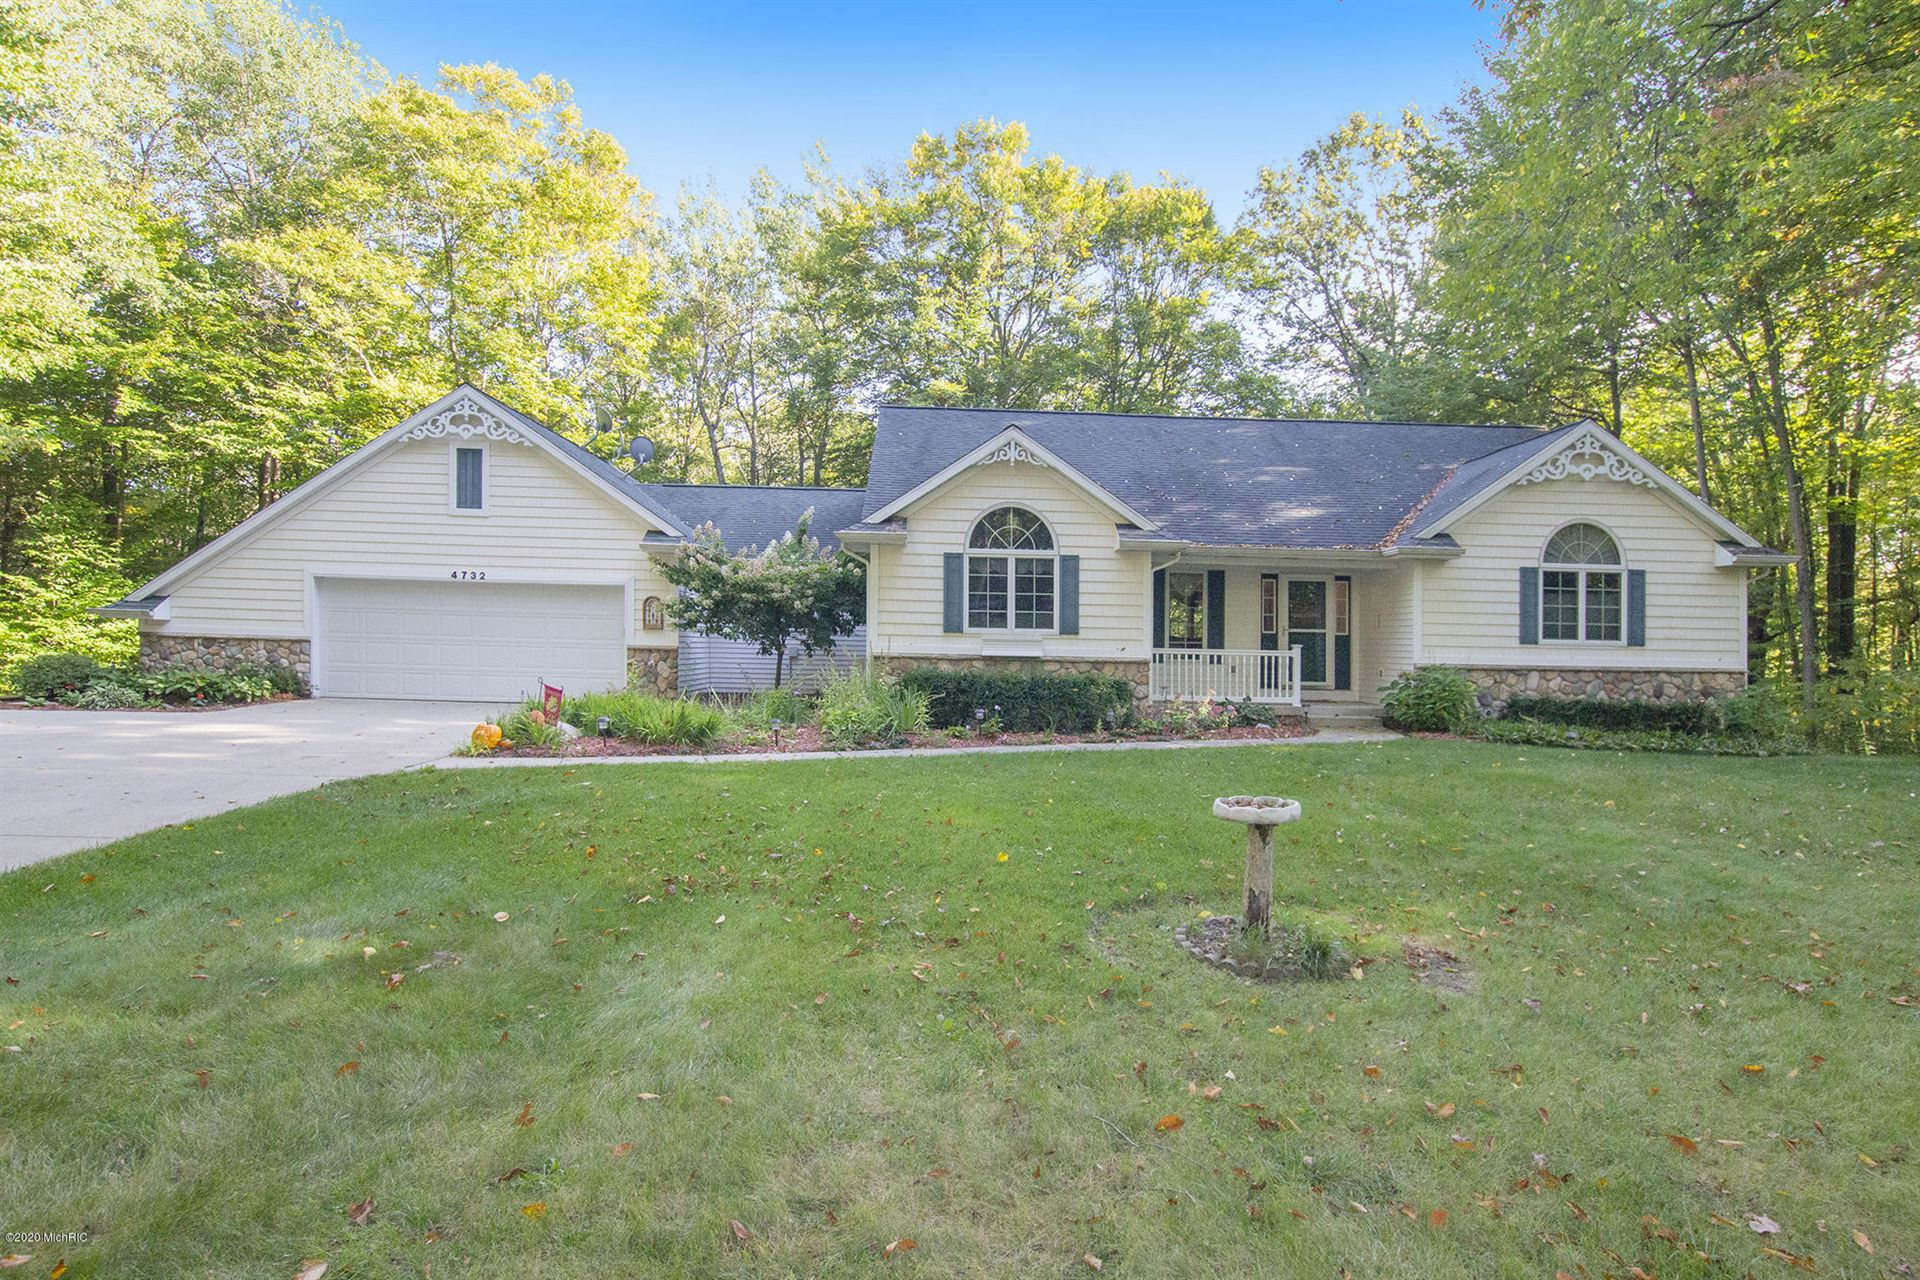 4732 Kimberly Lane, Pierson, MI 49339 - MLS#: 20042044